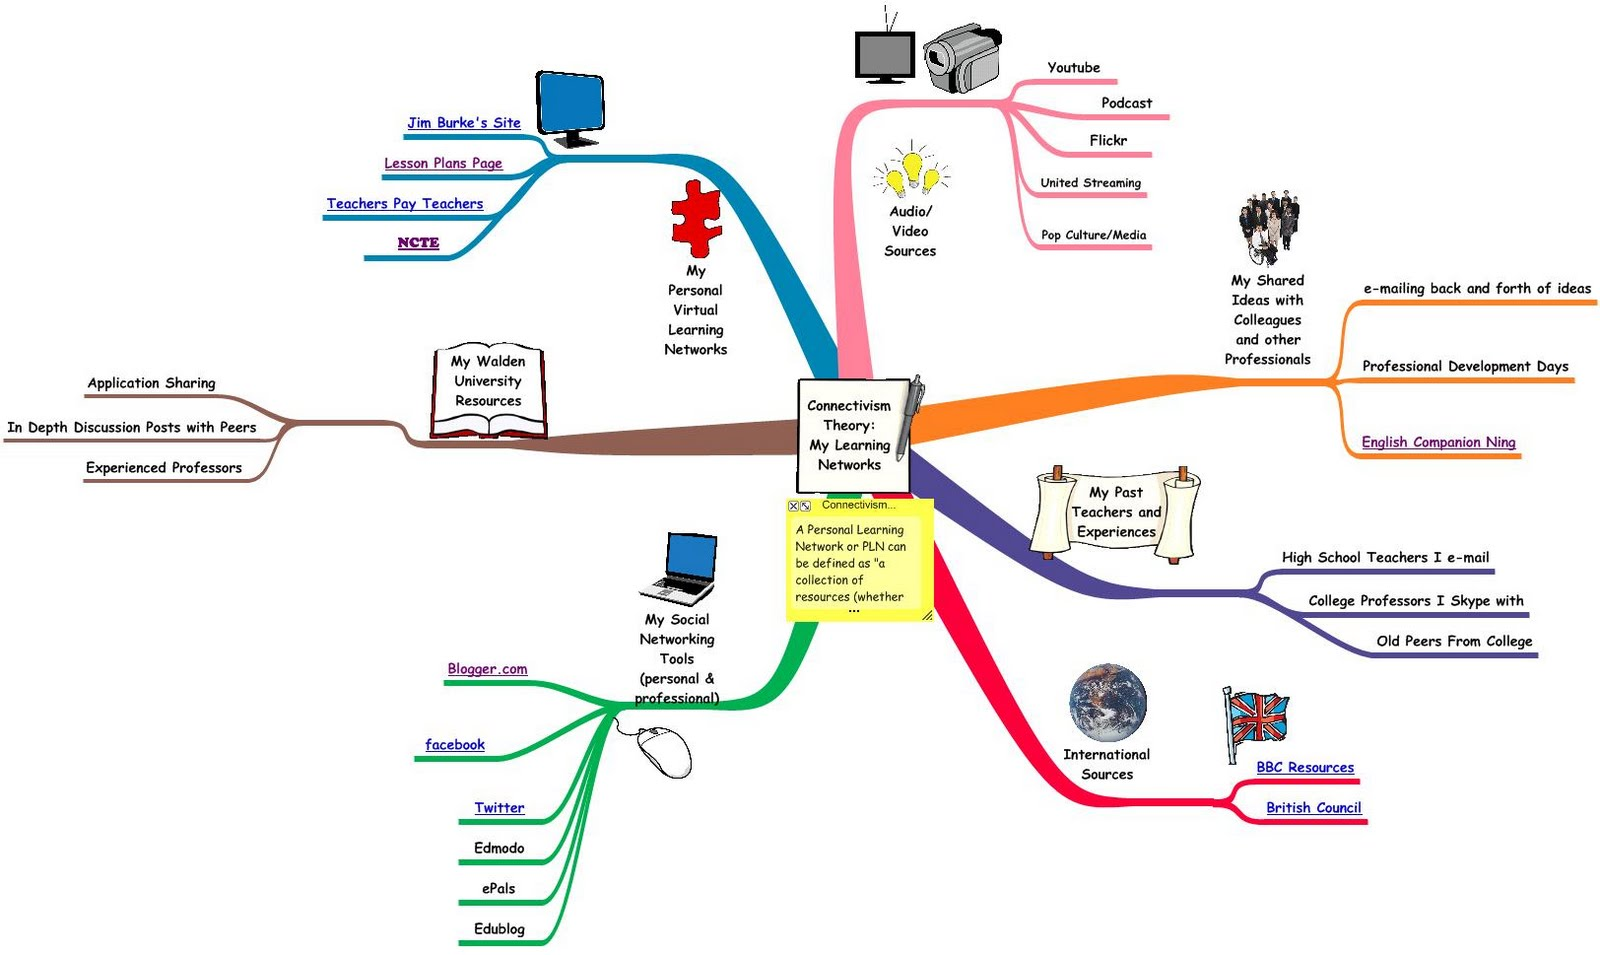 Designing Developing Curriculum With Technology